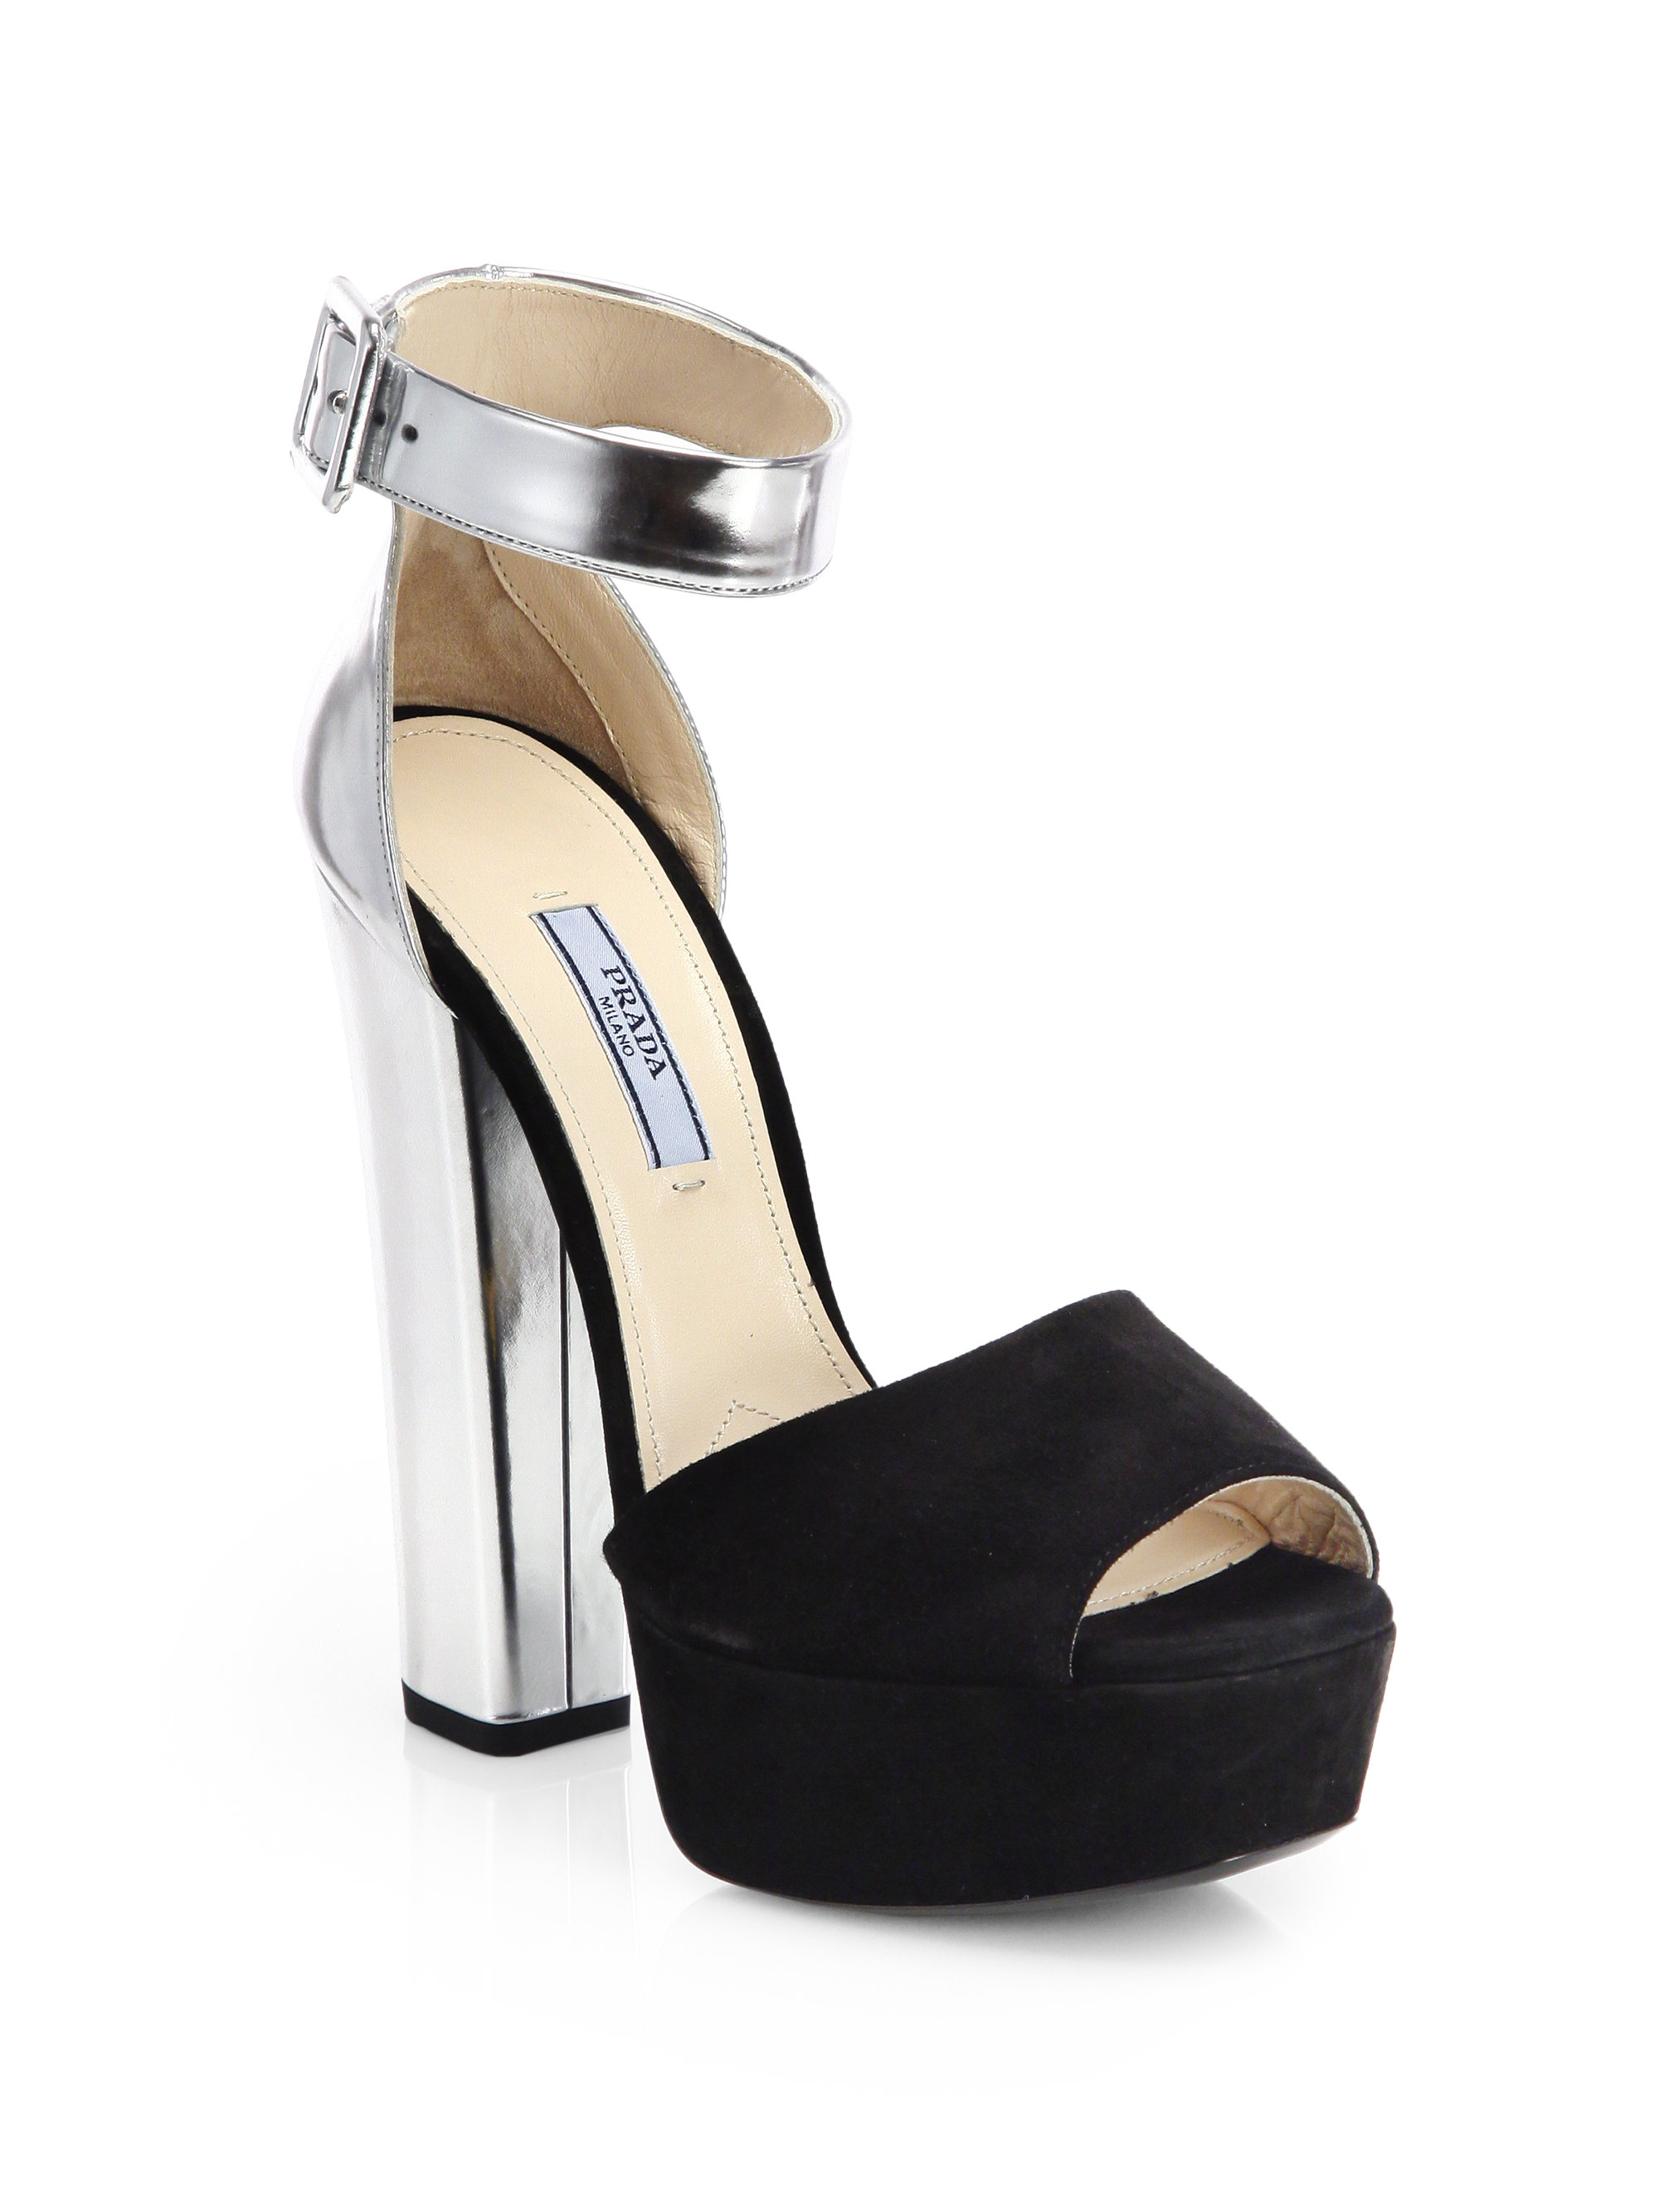 965fc6a90ce Lyst - Prada Suede Metallic Leather Platform Sandals in Black